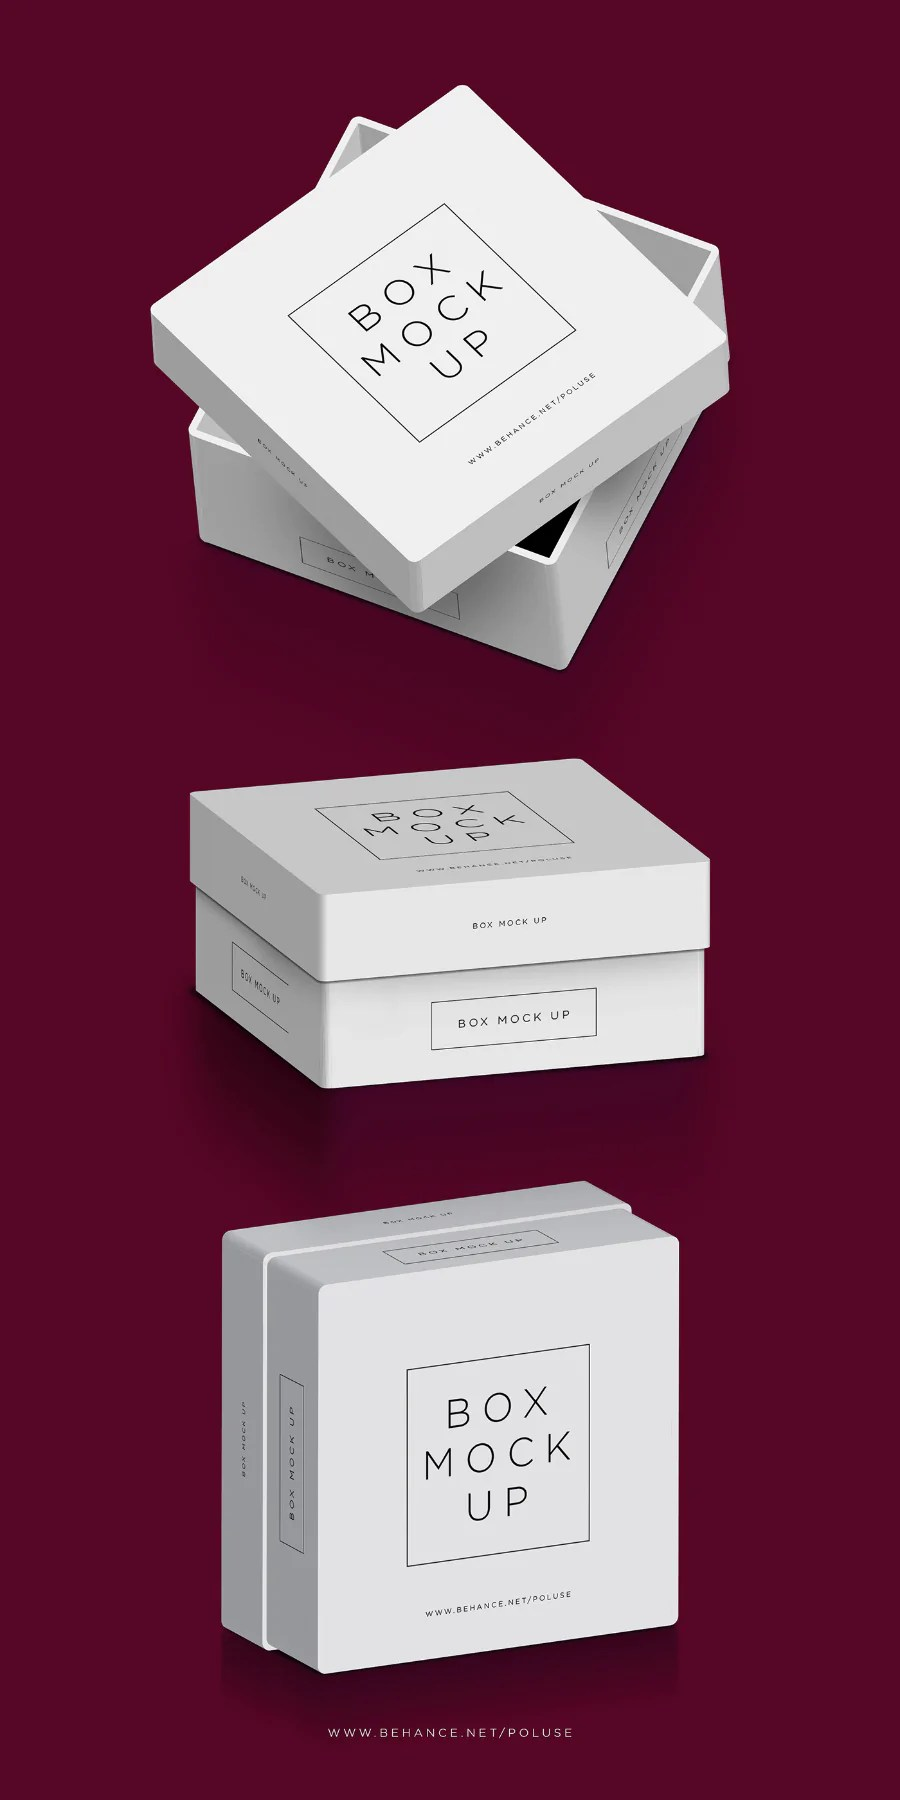 Download Free Packaging Mockups | Free Psd Mockup Templates Page 2 ...